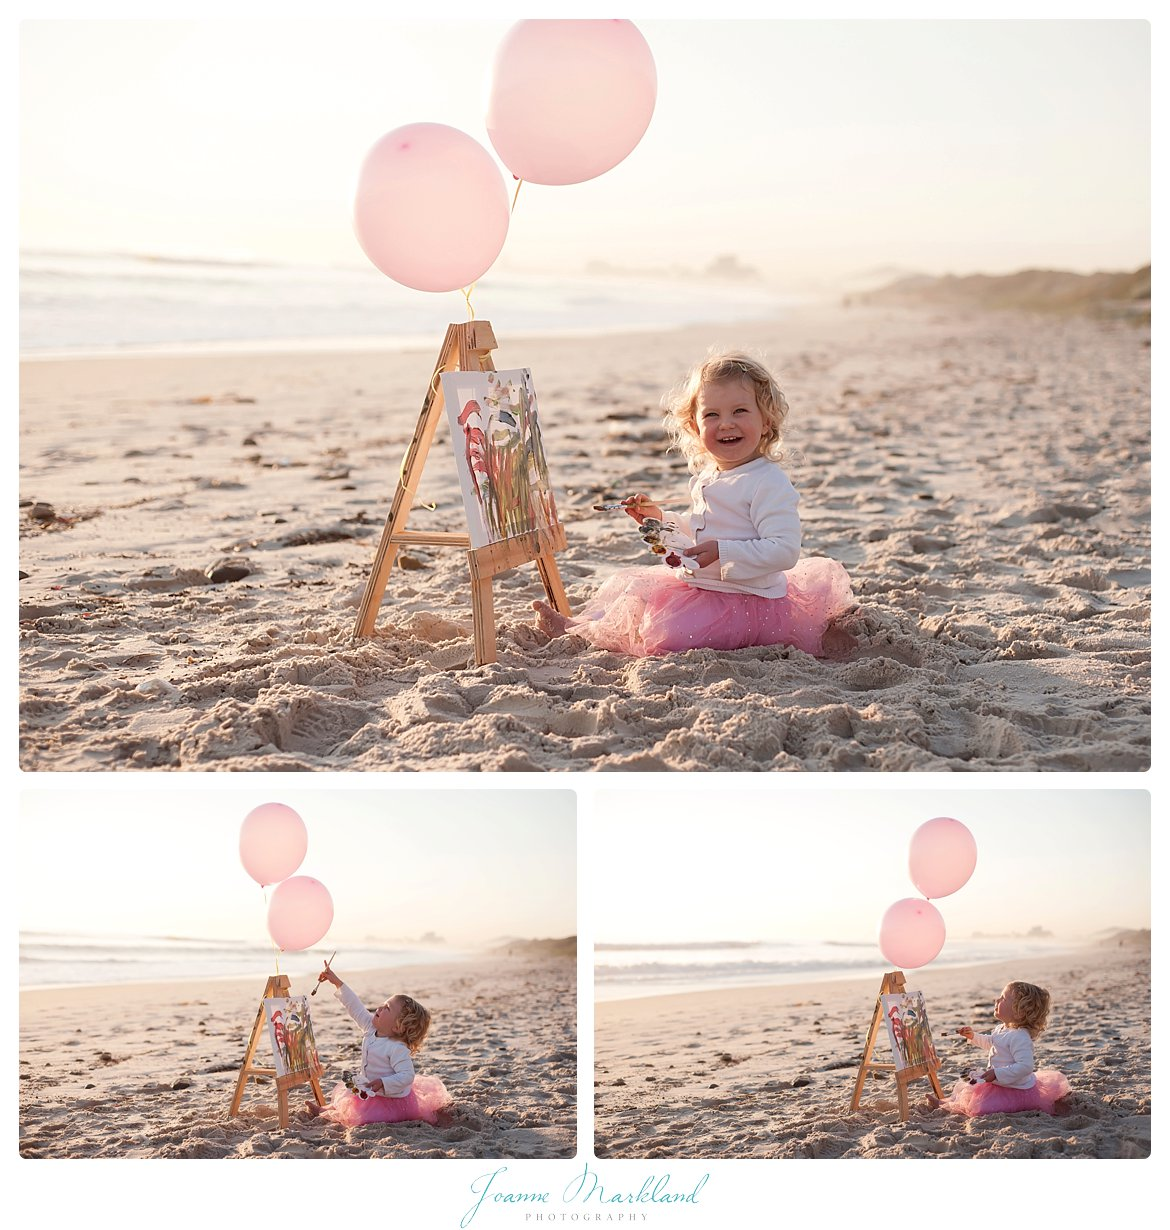 toddler-birthday-portraits-family-photographer-joanne-markland-photography-cape-town-008